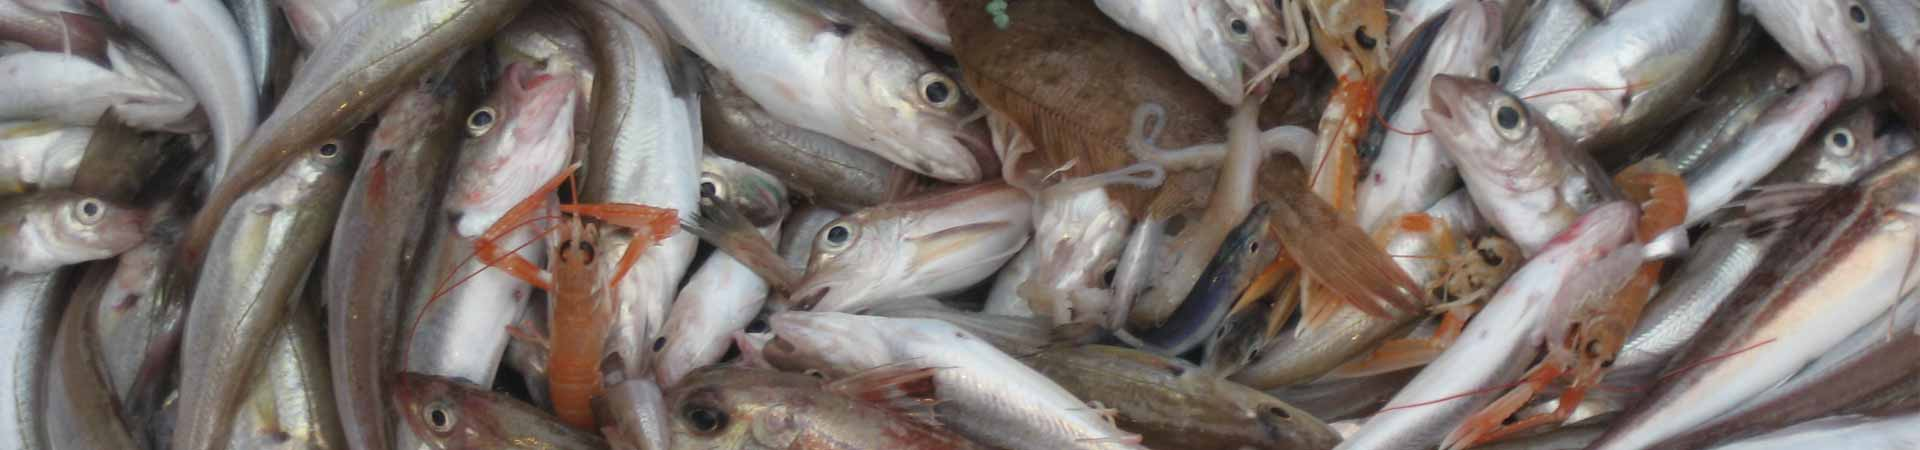 A mixed trawl catch in the Irish Sea with white fish, flatfish, crustaceans and cephalopods